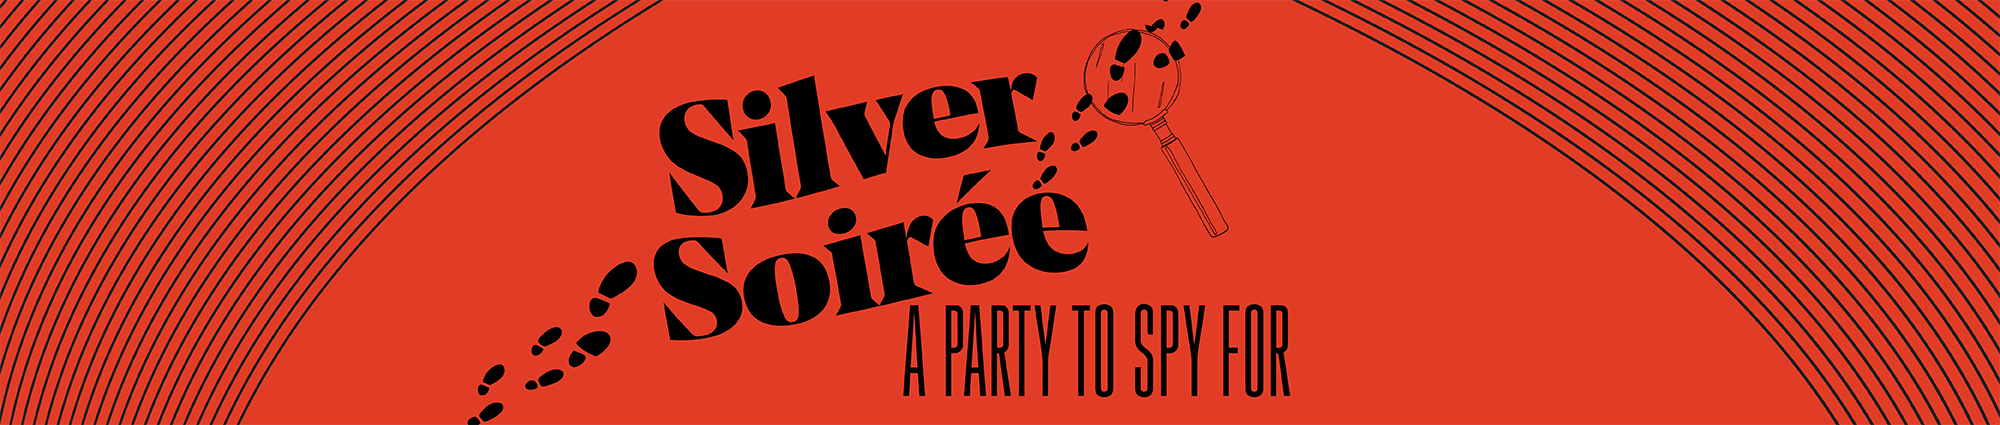 silver soiree banner